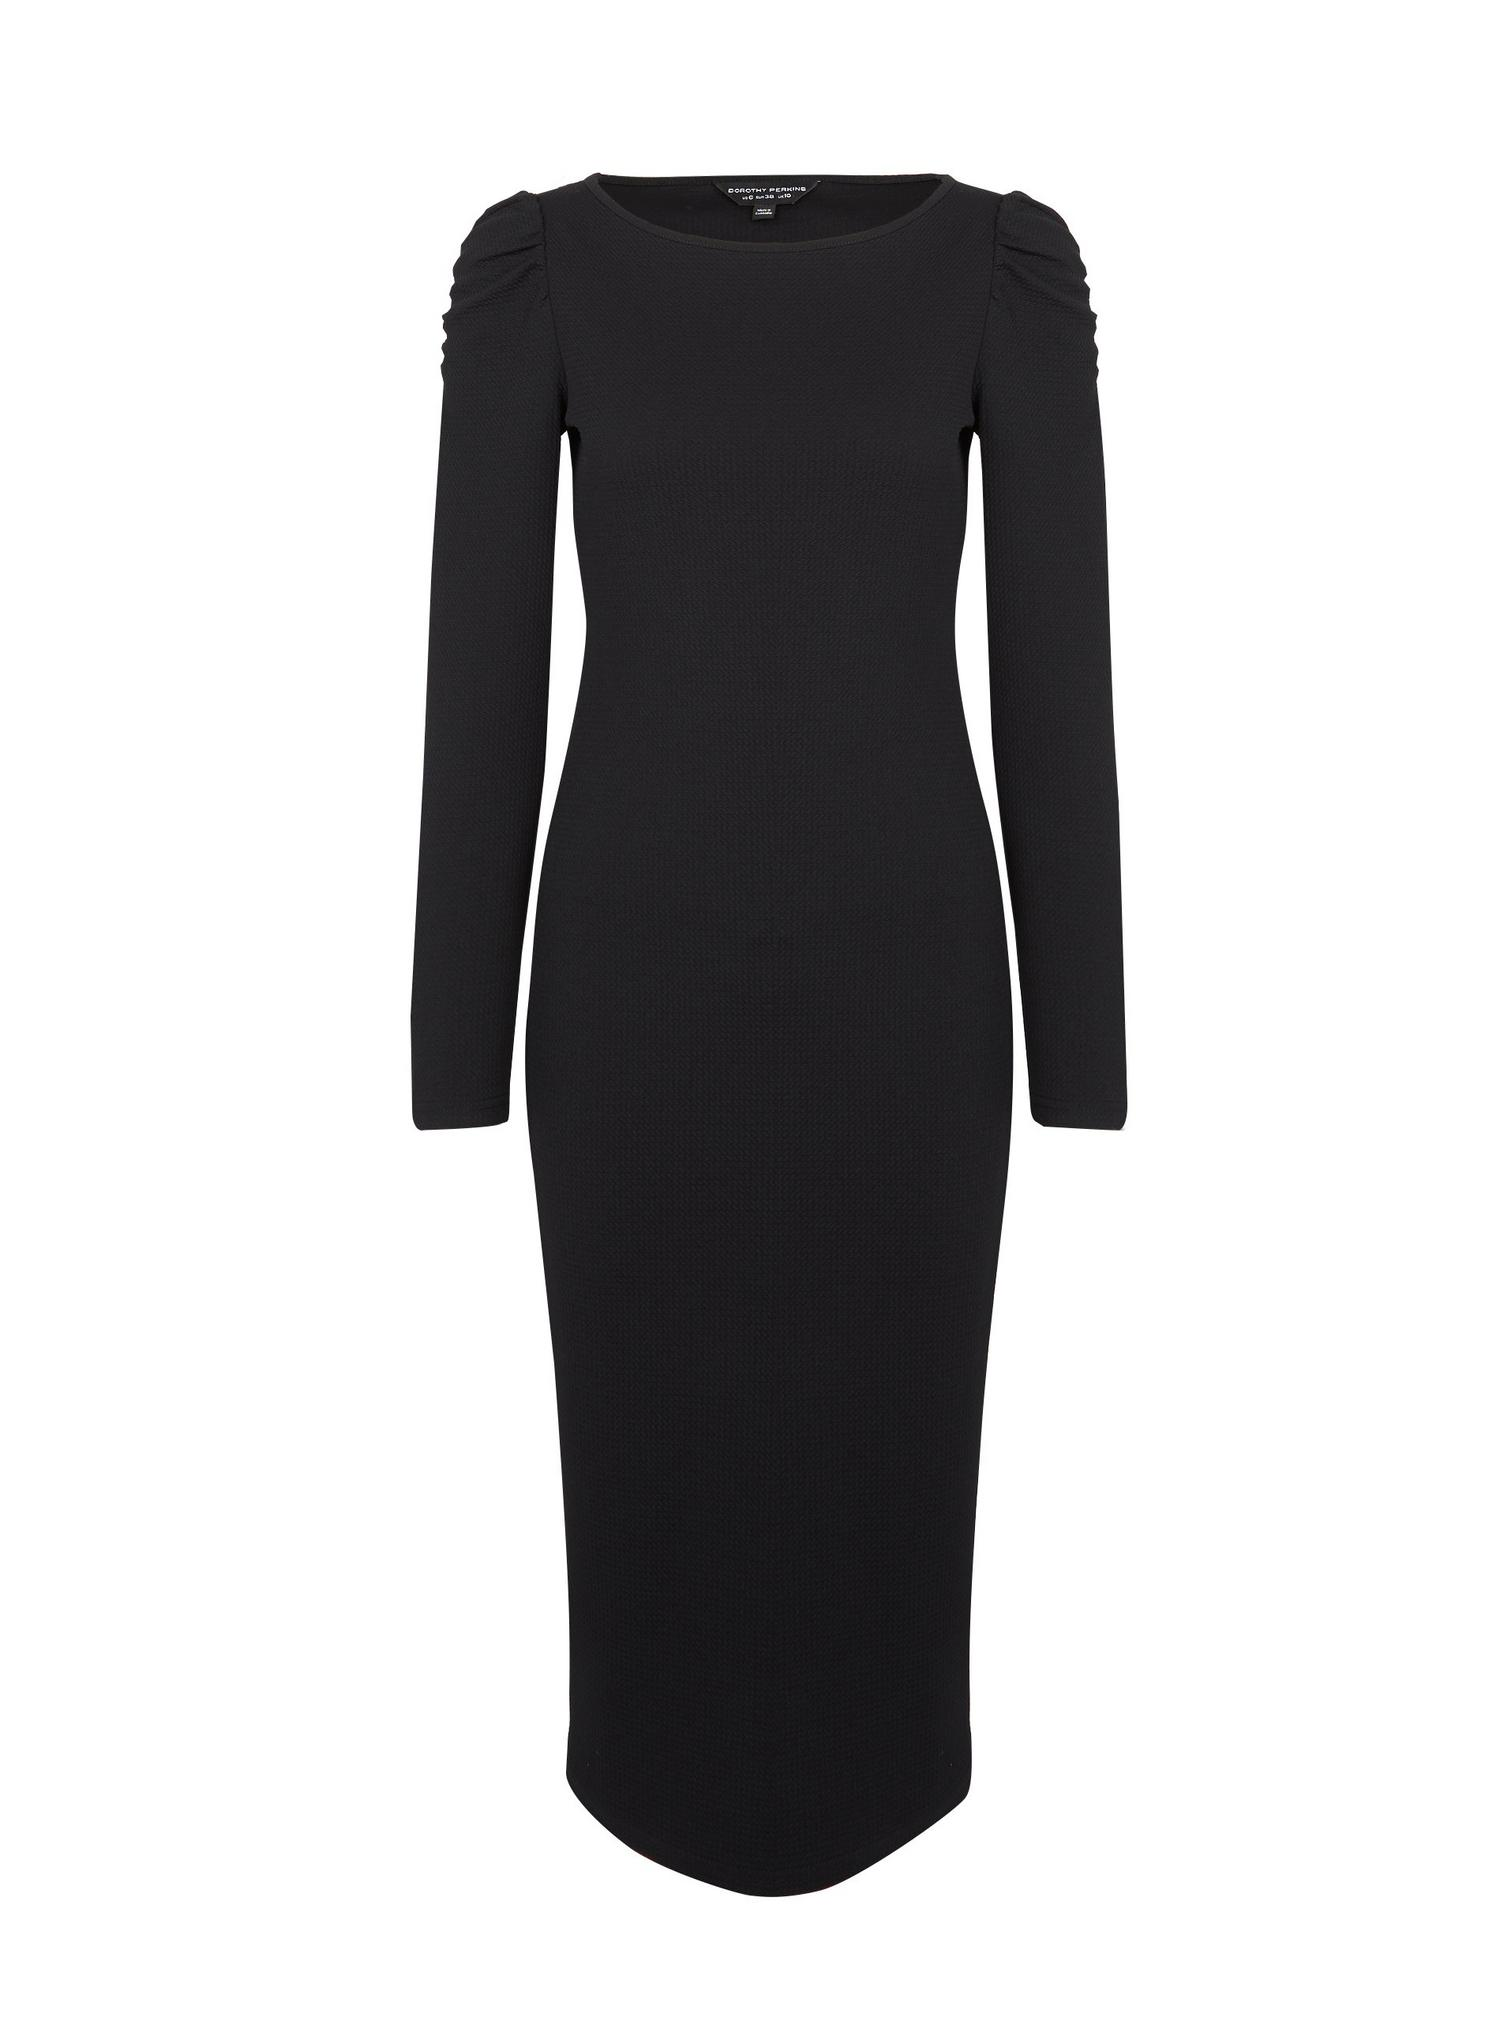 105 Black Ruched Bodycon Dress image number 2